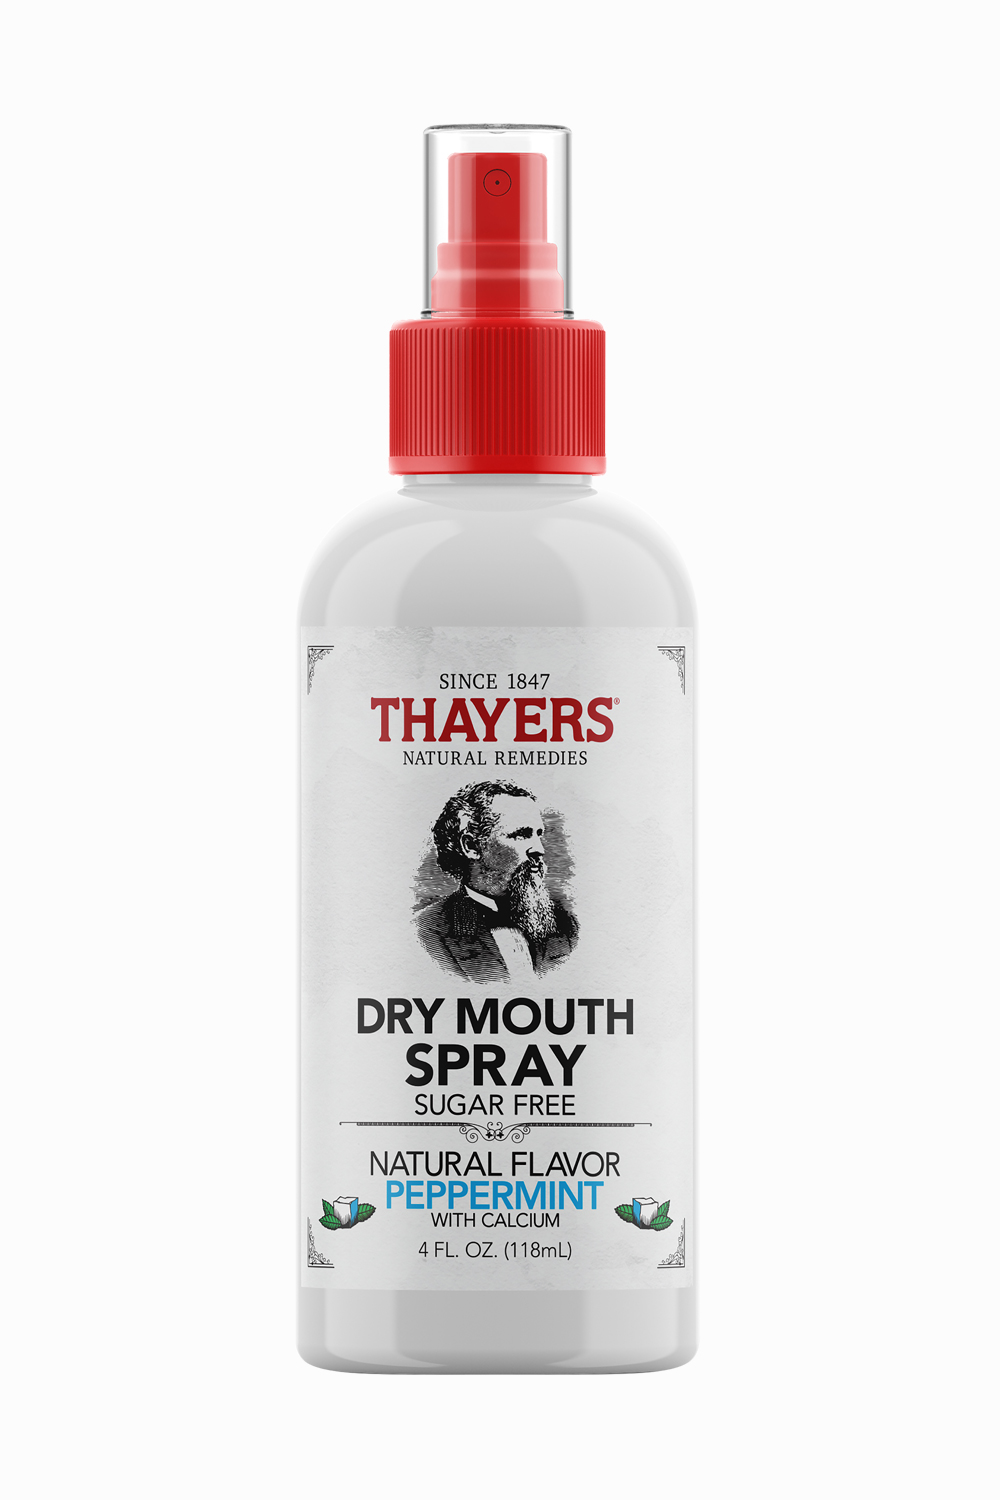 THAYERS DRY MOUTH SPRAY PEPPERMINT